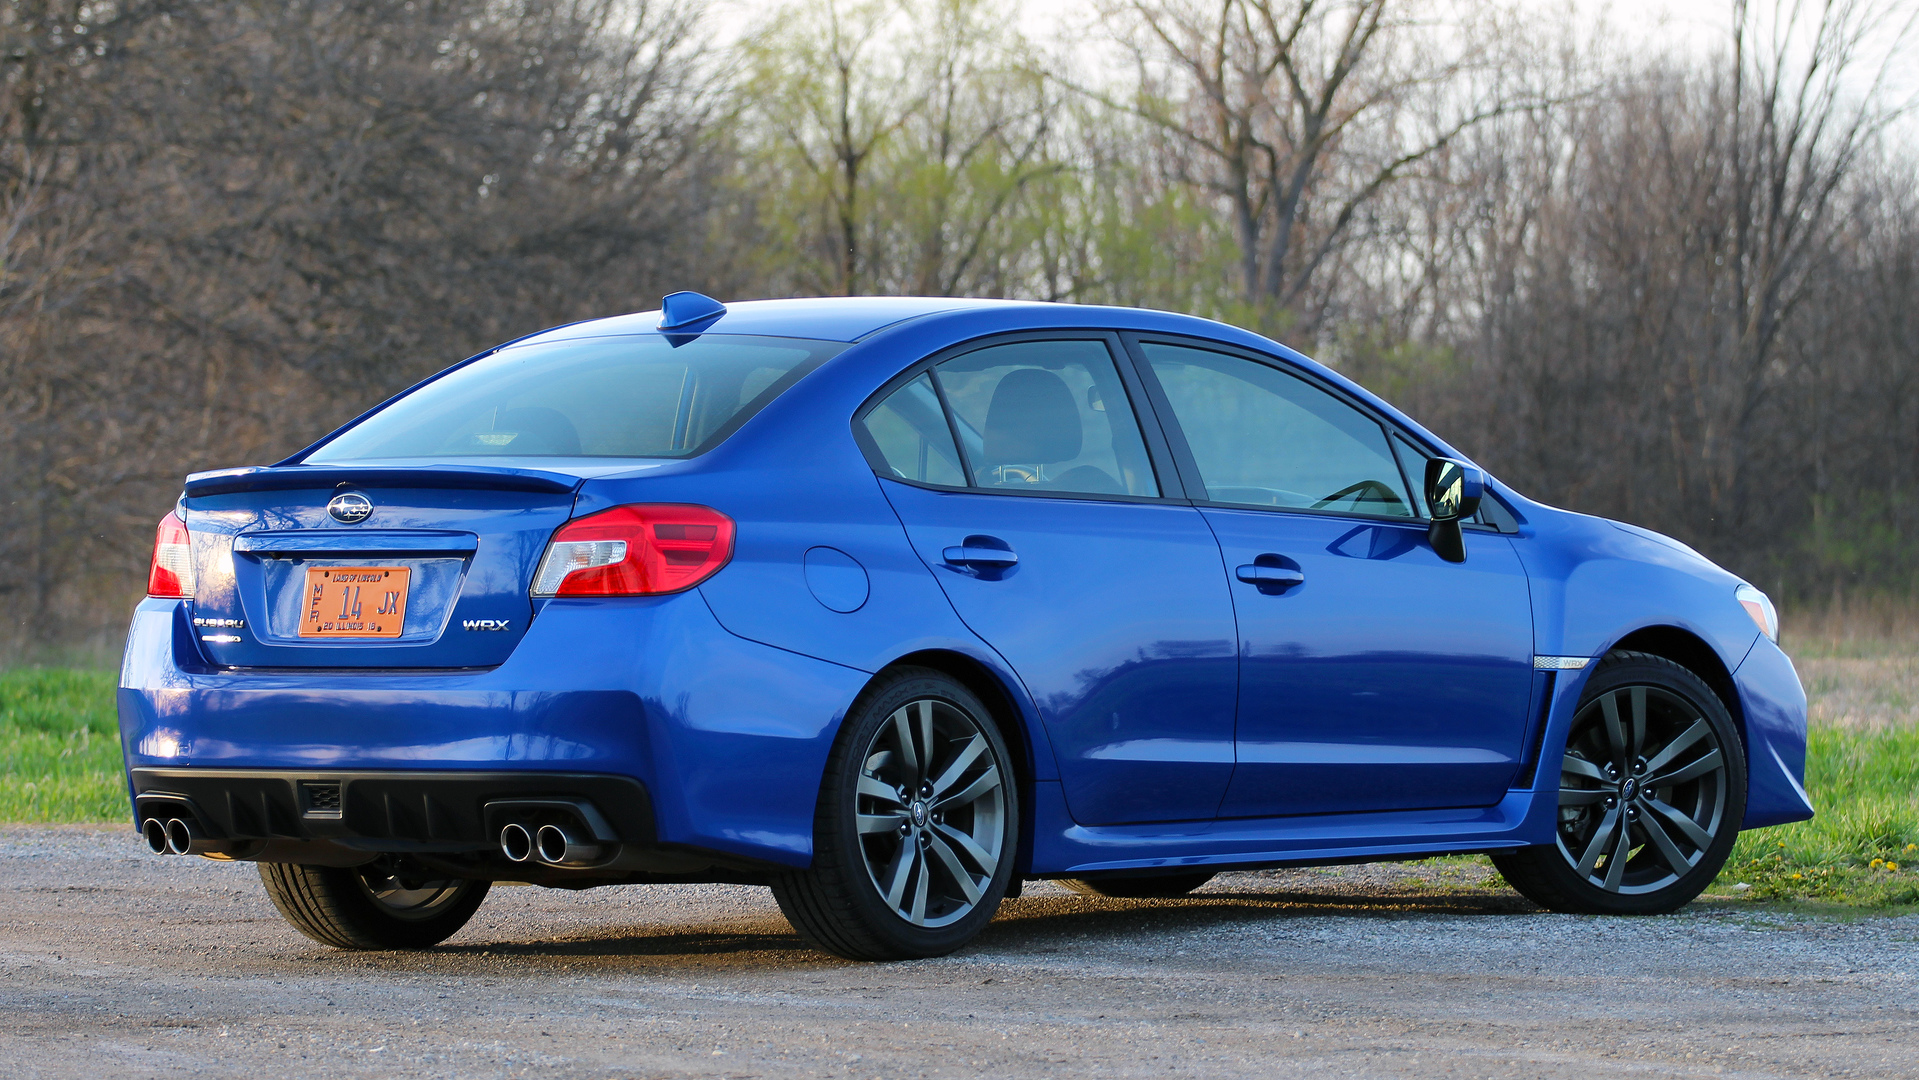 2016 Subaru WRX Review: A hatchback away from turbocharged